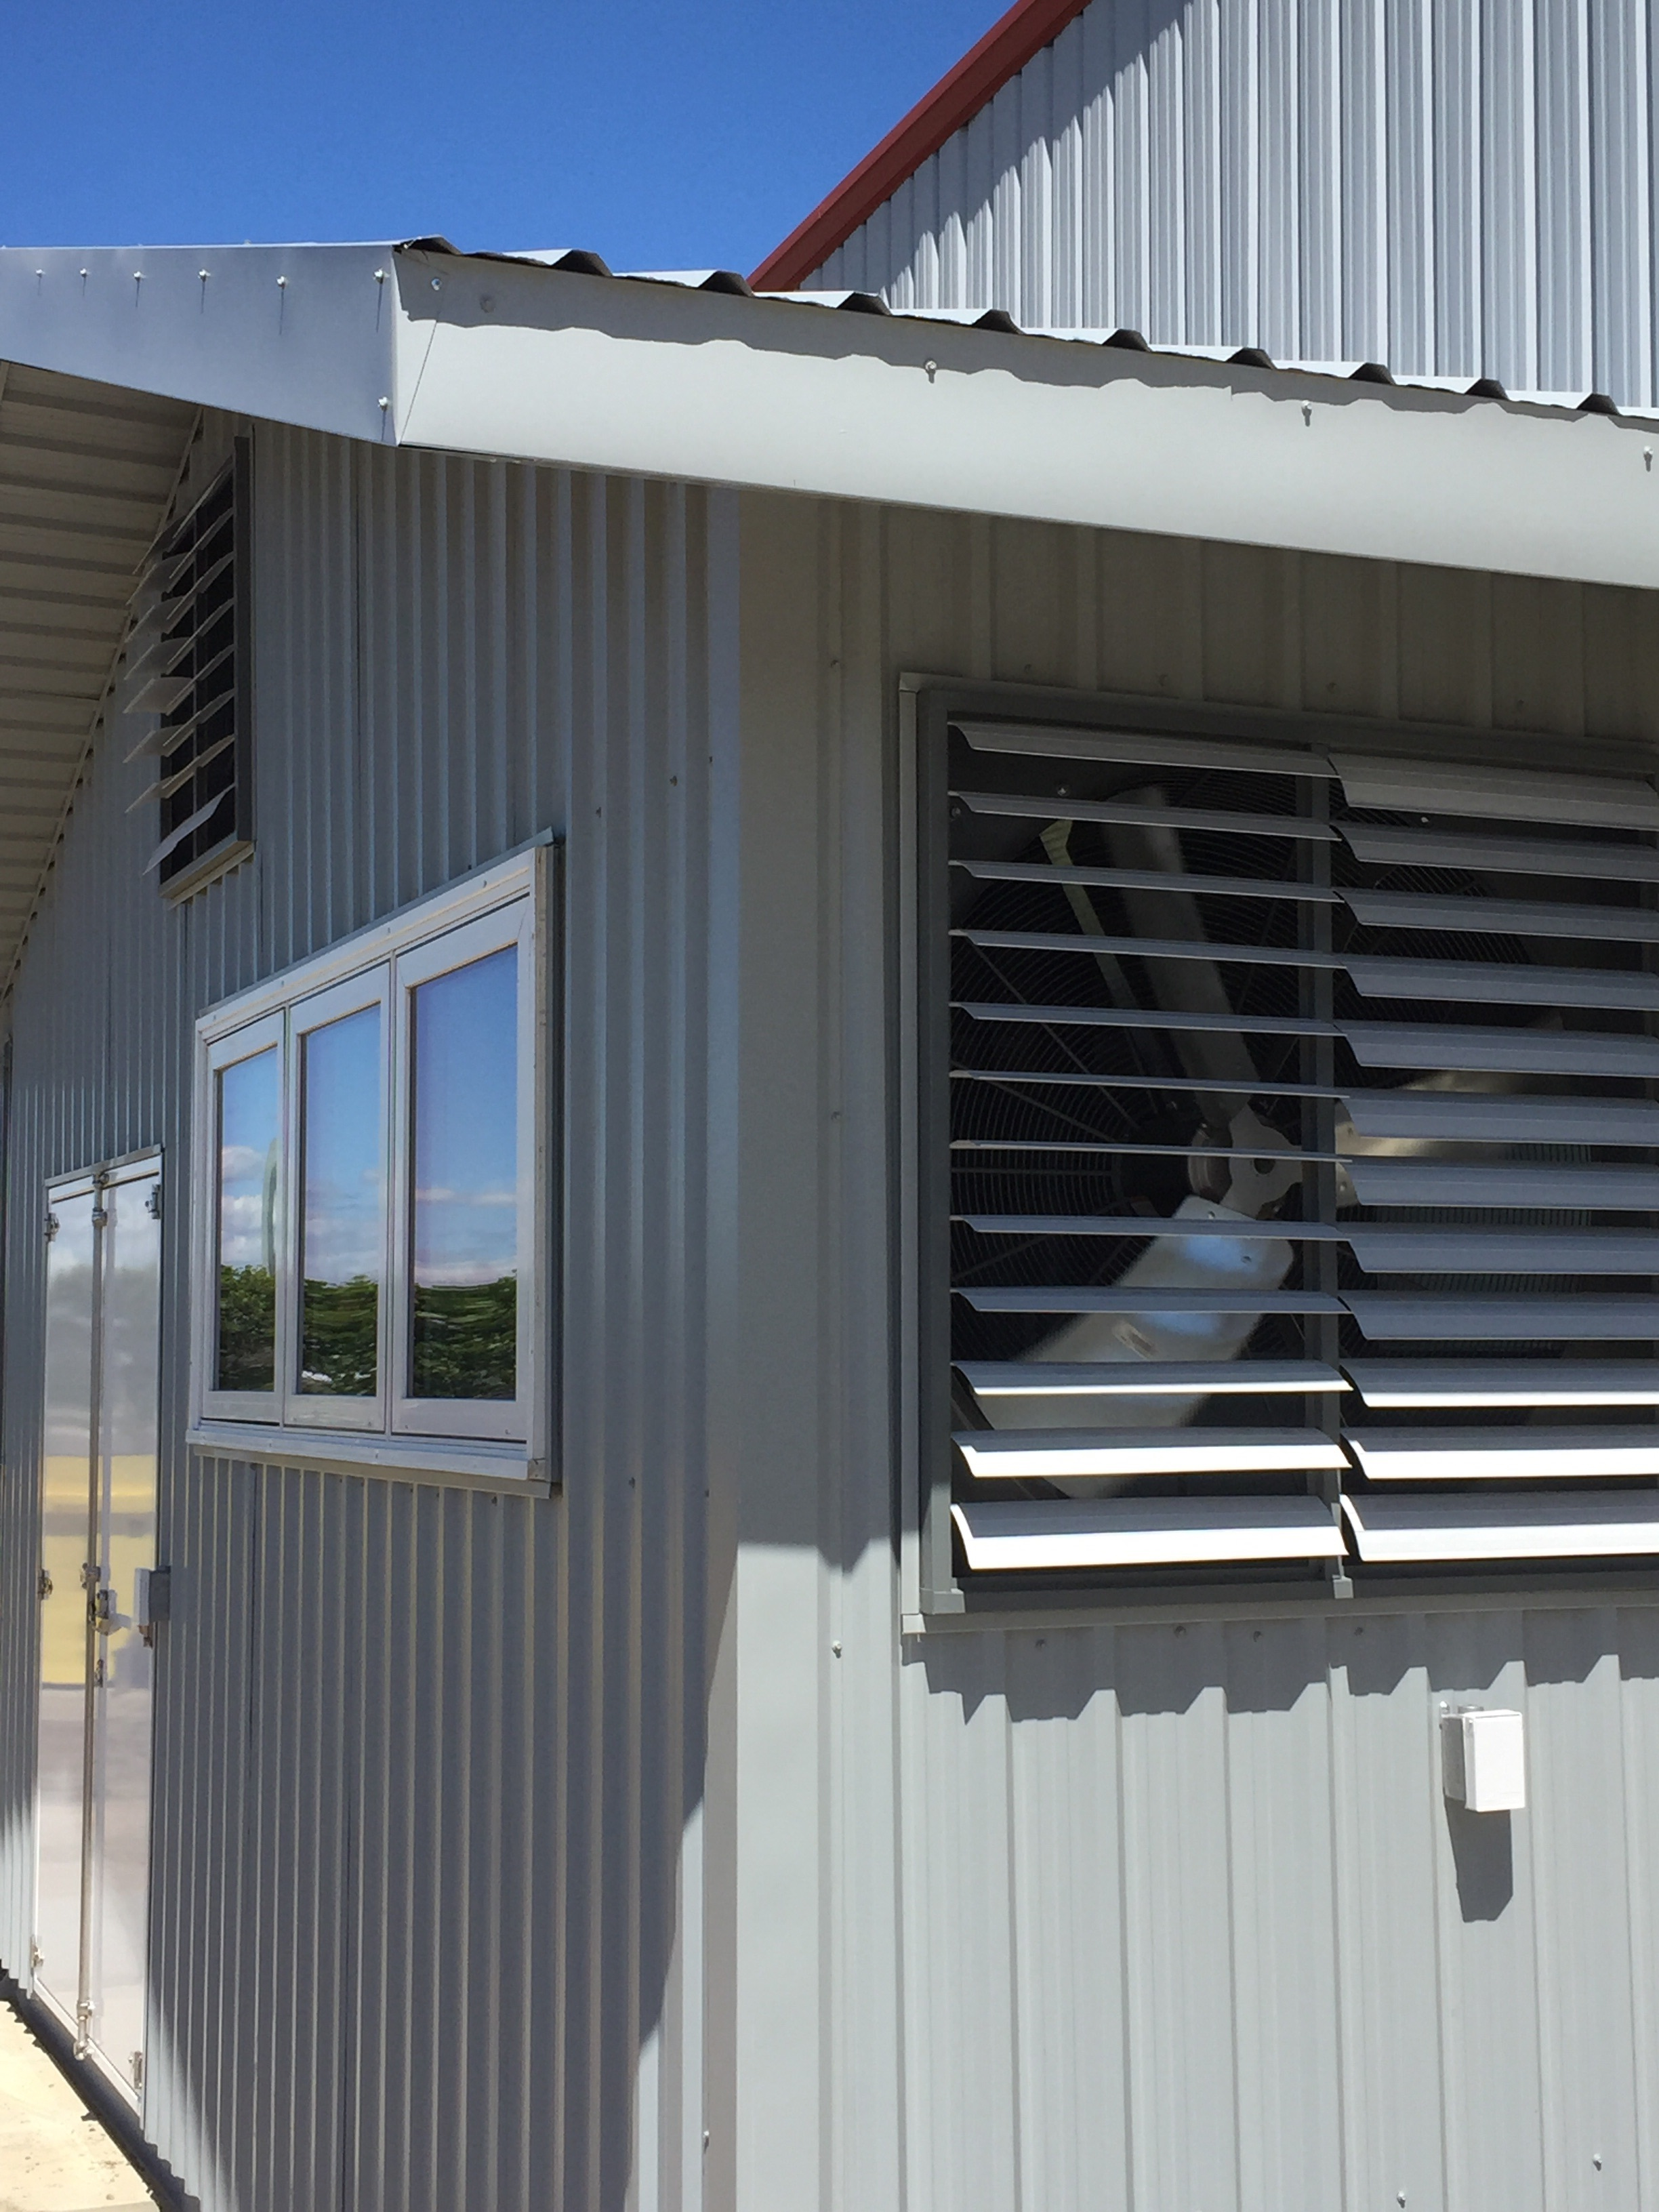 Outside the south wall, you can see the flaps open for both one large exhaust fan and the gable fan. As a side note, the white entry doors (left side of picture) were also manufactured in house at Lean Machine!